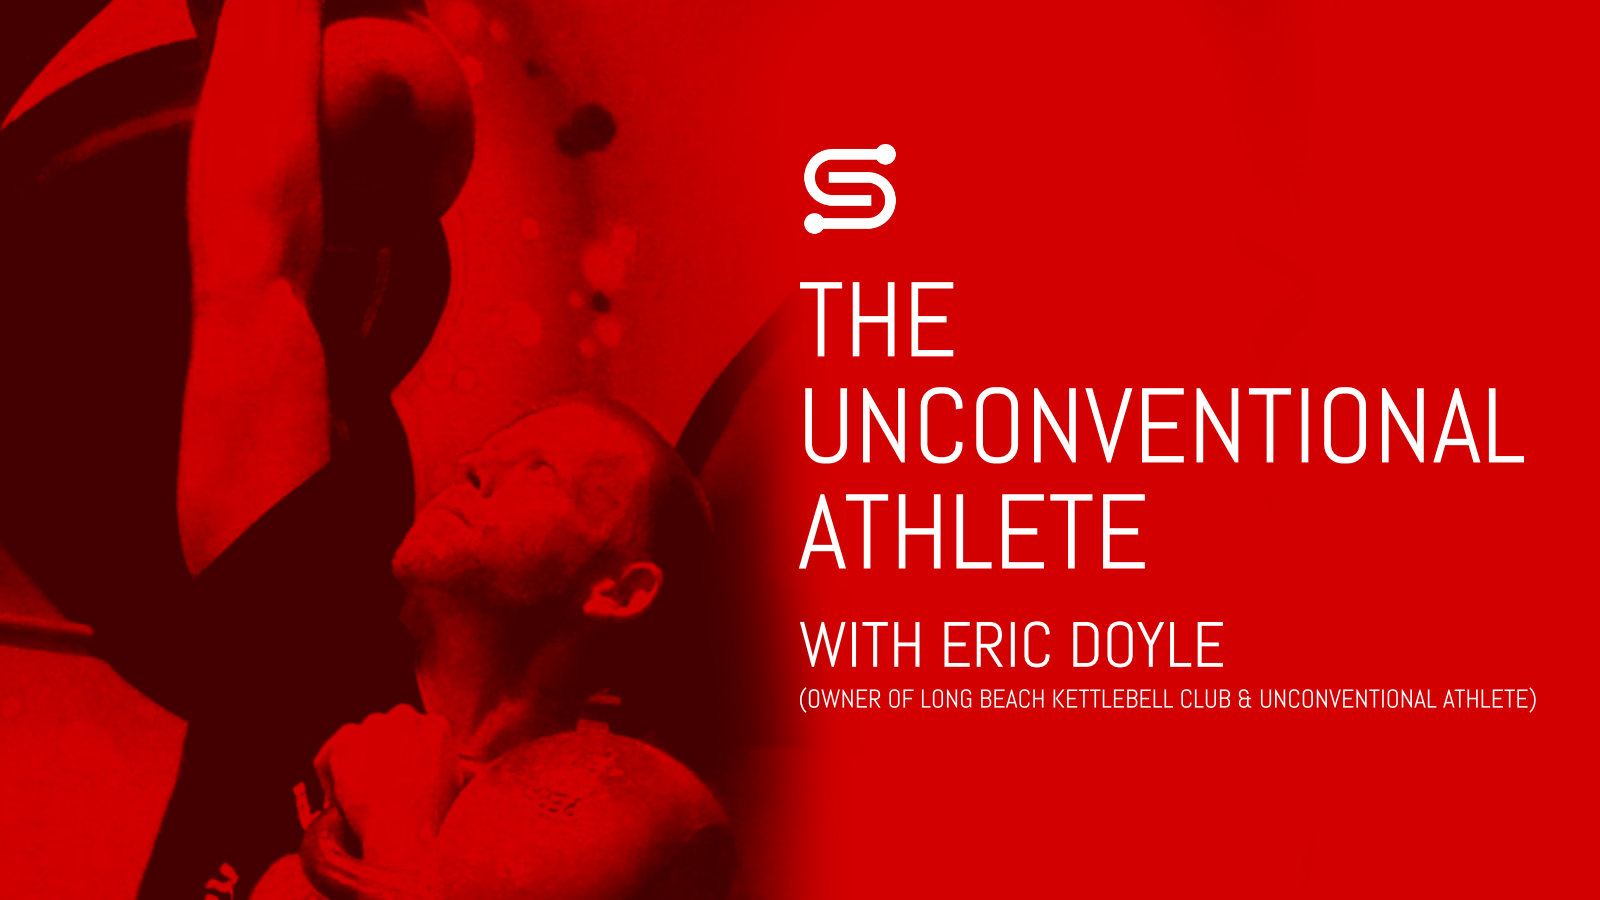 The Unconventional Athlete with Eric Doyle